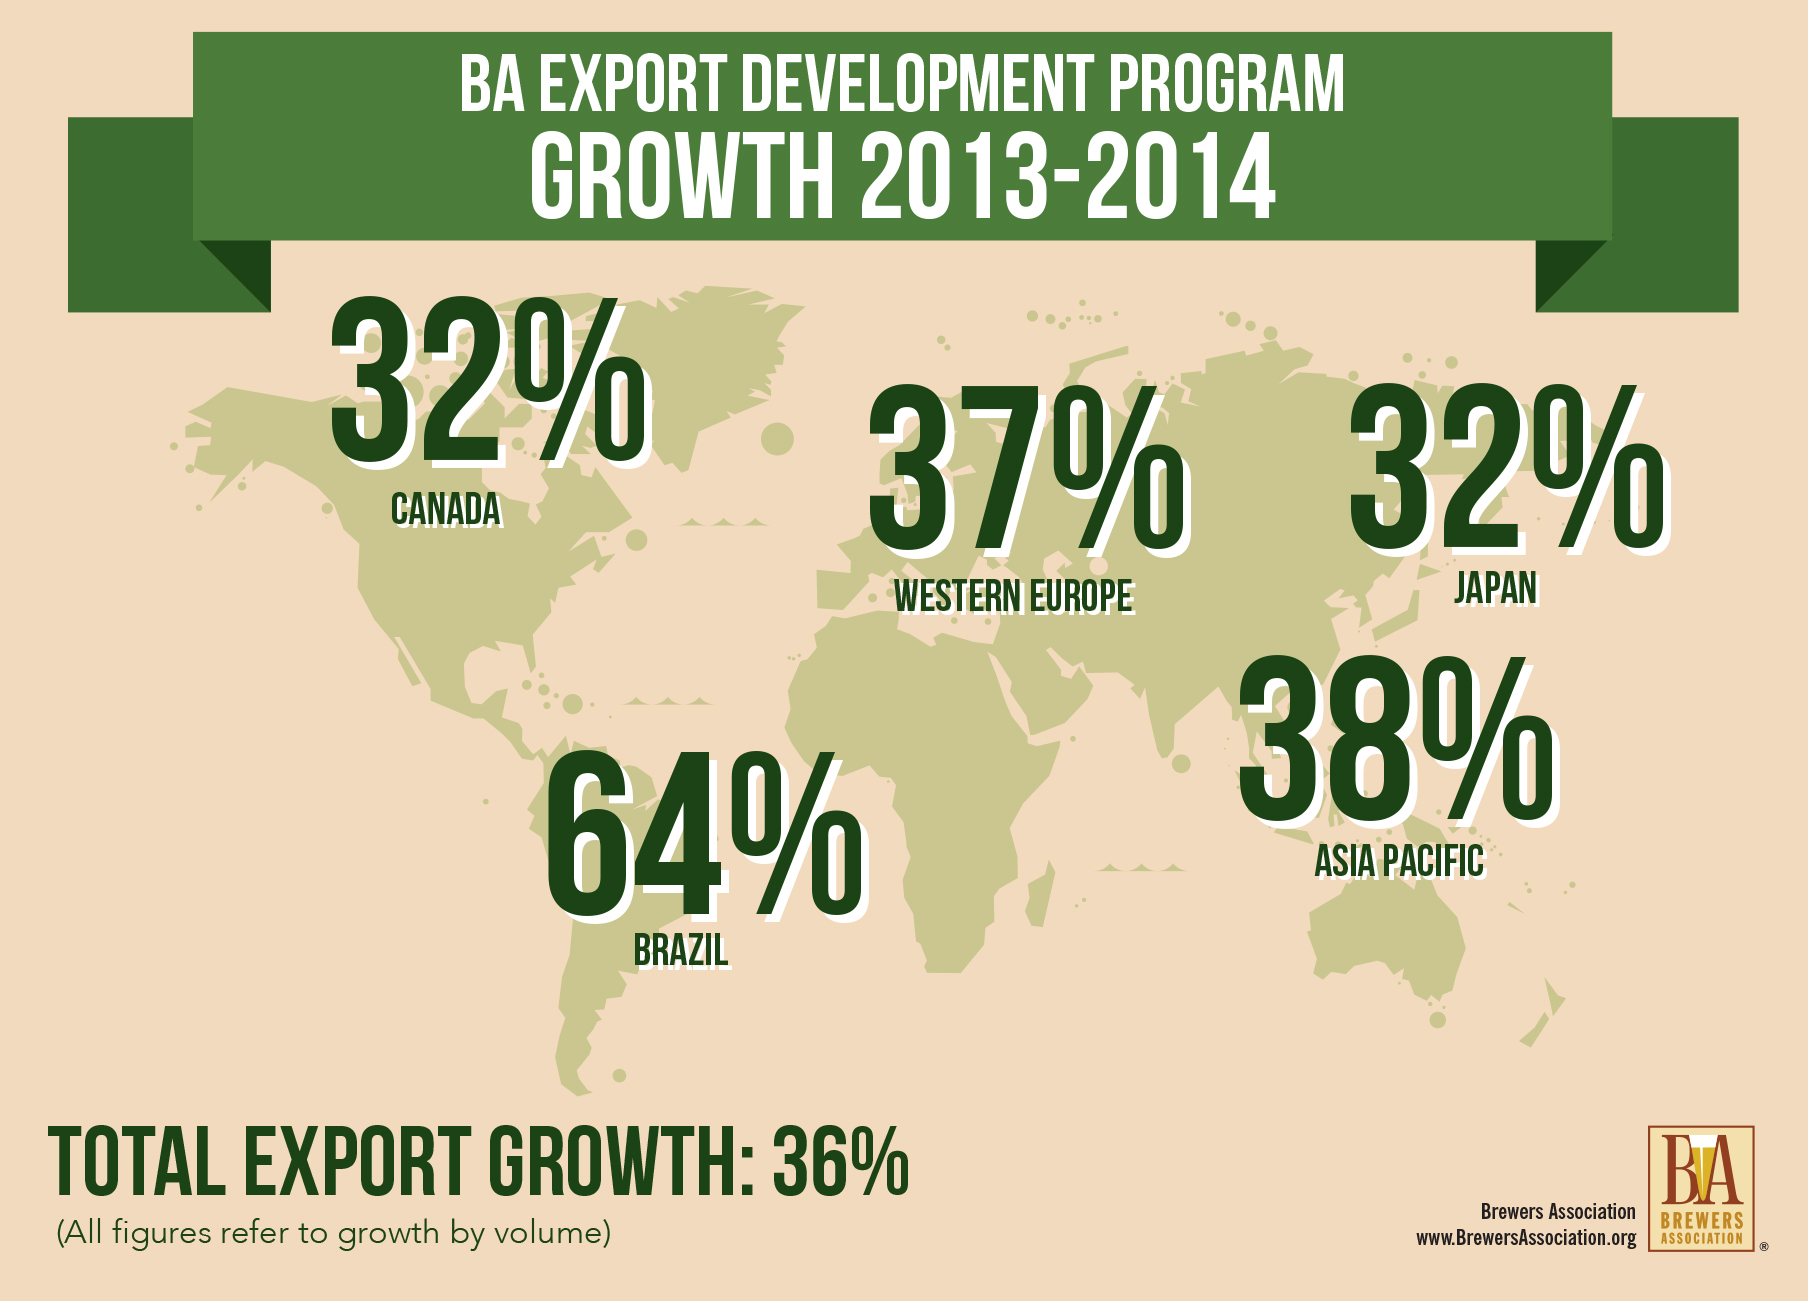 BA Export Development Program Growth